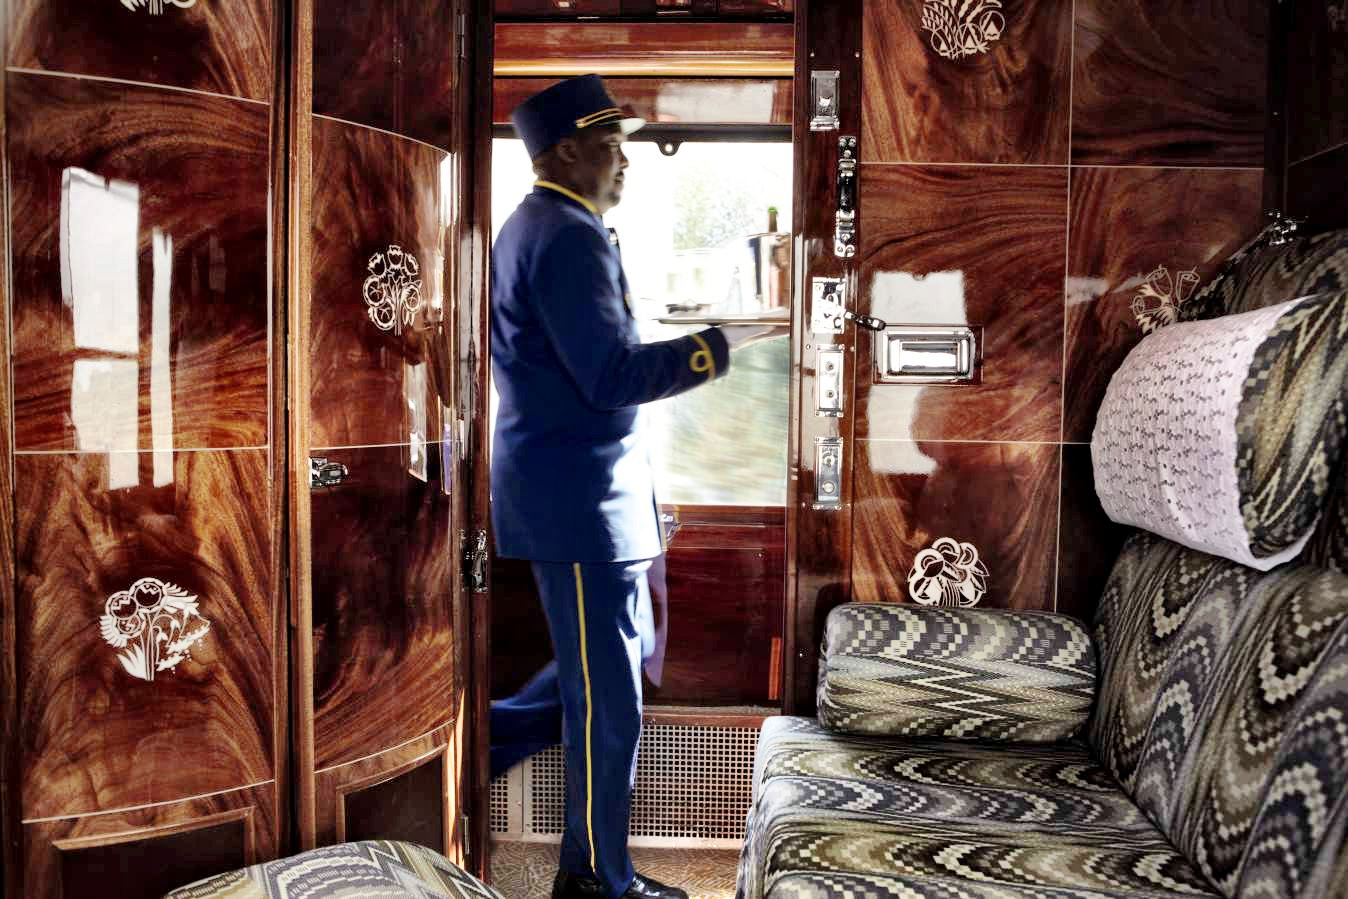 Venice Simplon Orient Express Luxusreisen Travel Blog Reisen 500